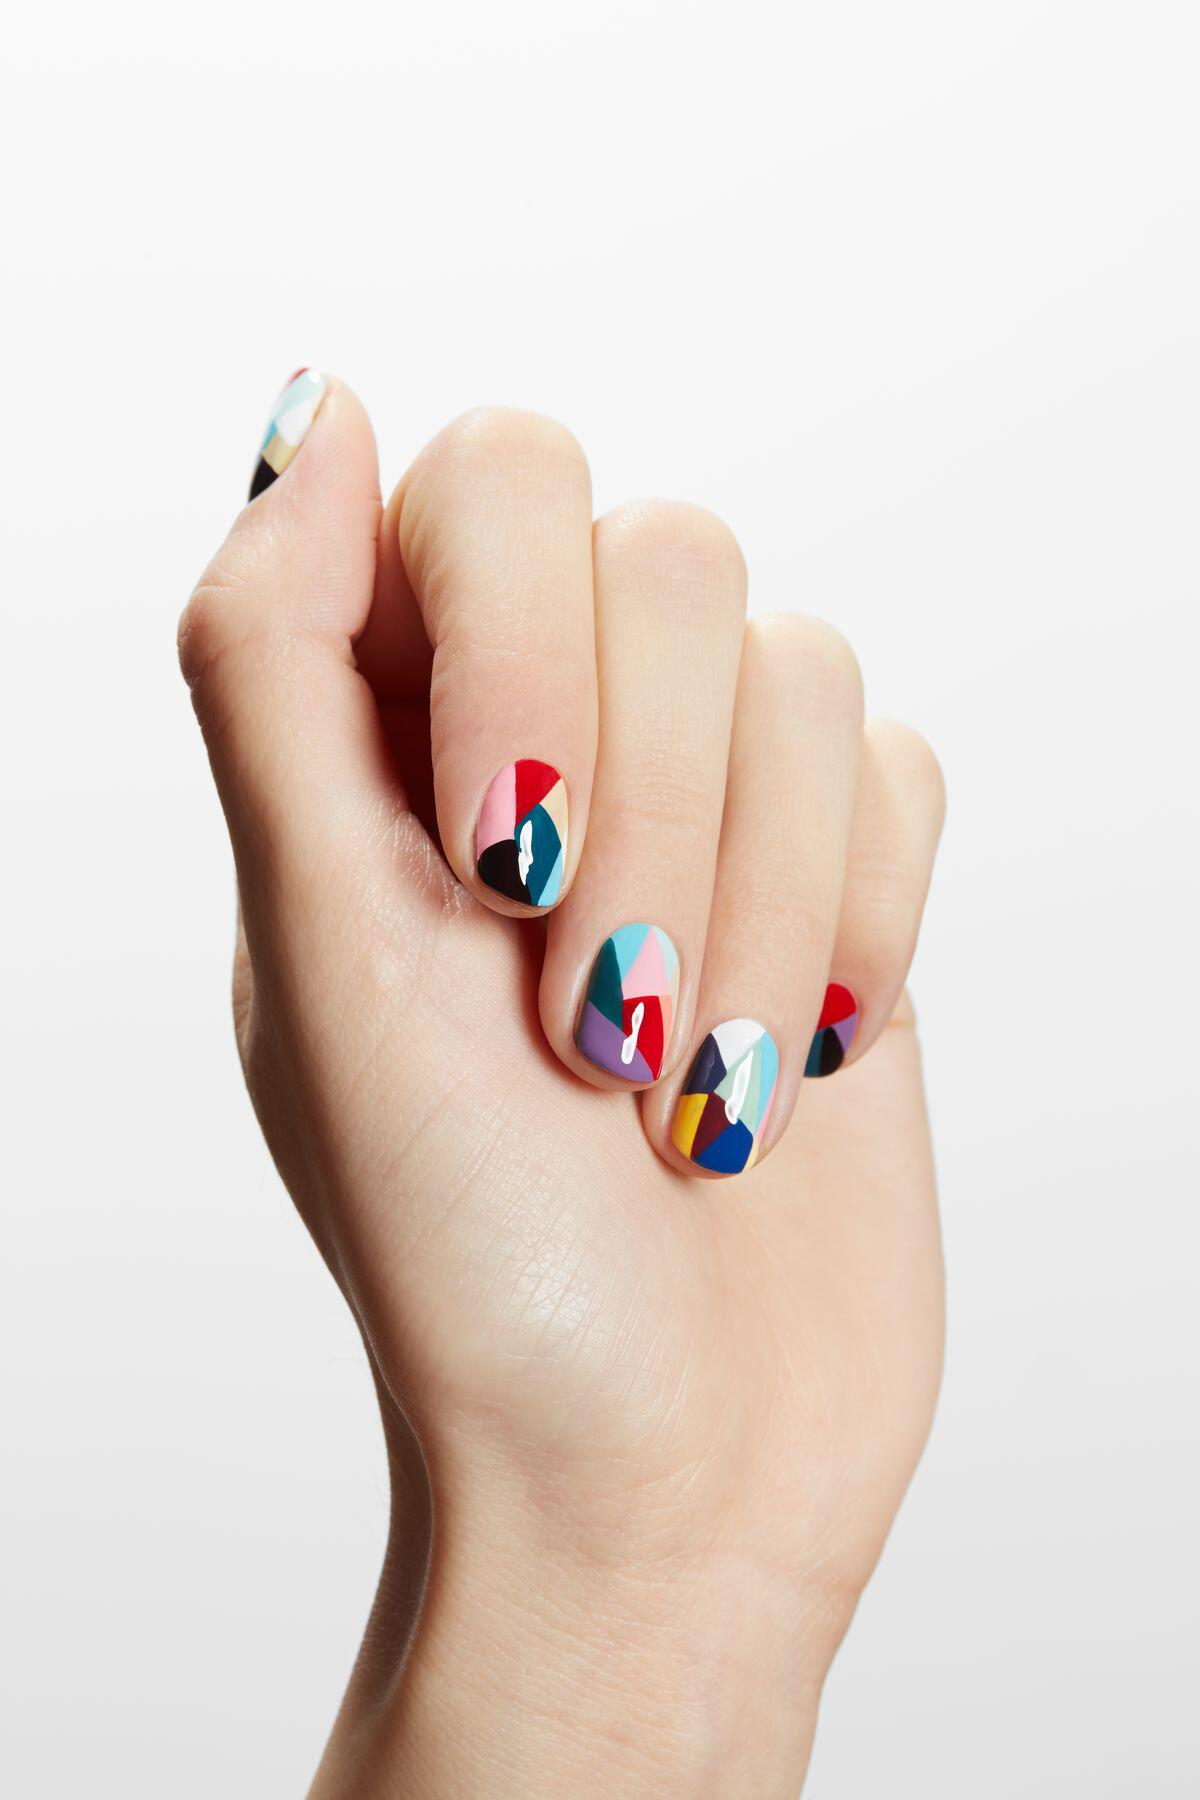 geometric nailart 15 designs 13 - Geometric nailart 15 best designs to copy